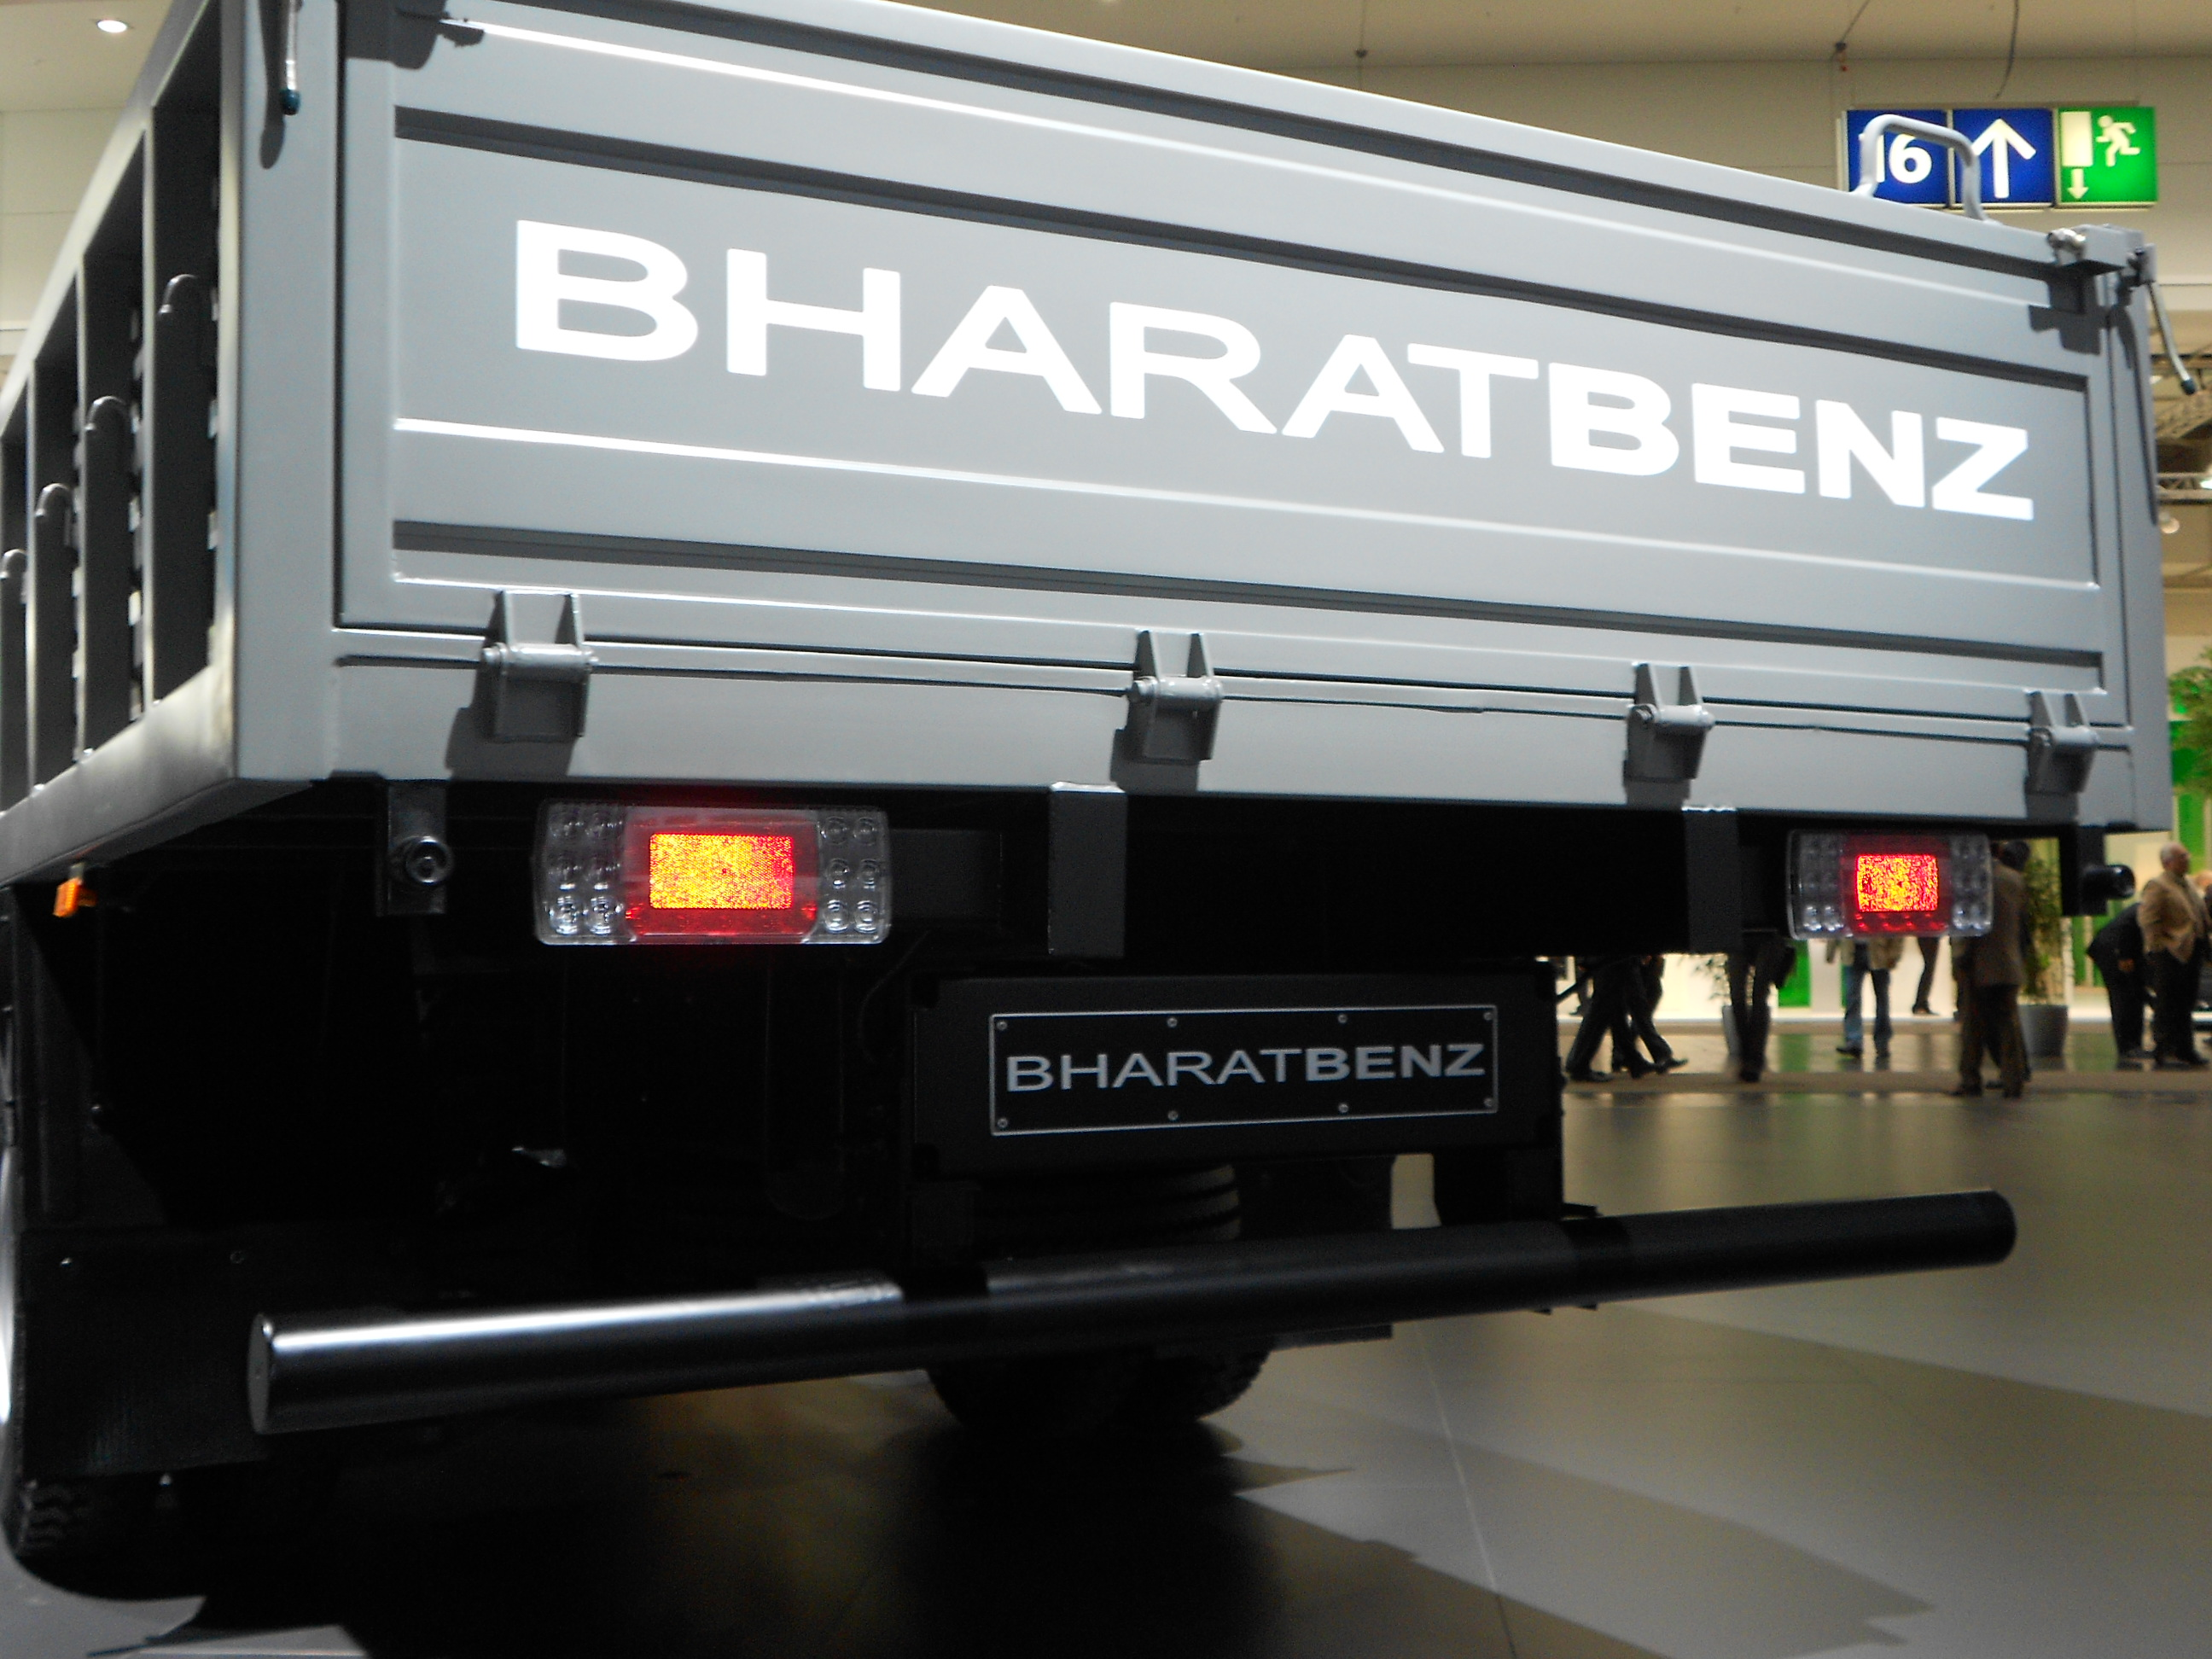 Filebharatbenz light duty truck 914 r tail 1 spielvogel 2012g filebharatbenz light duty truck 914 r tail 1 spielvogel 2012g aloadofball Image collections